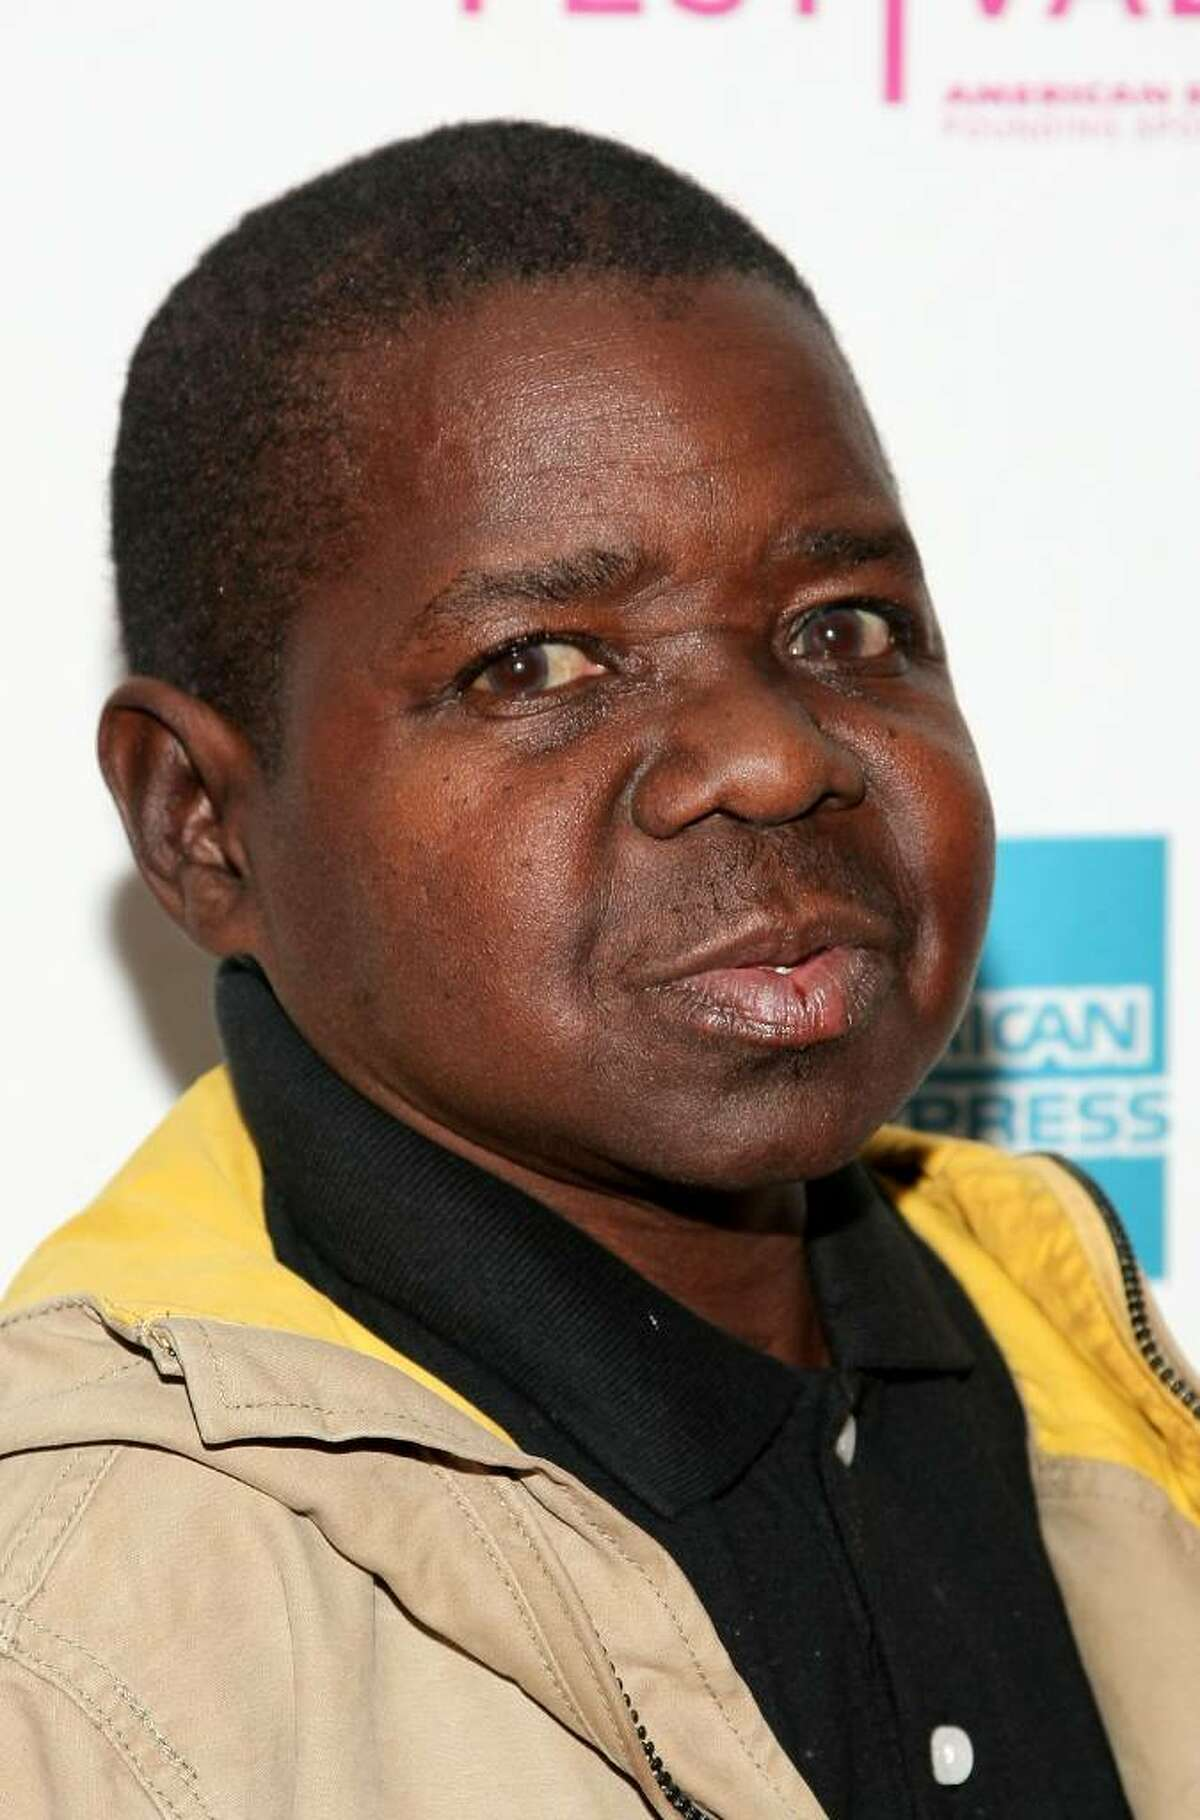 """NEW YORK - APRIL 25: Actor Gary Coleman attends the premiere of """"Midgets vs. Mascots"""" during the 2009 Tribeca Film Festival at AMC Village VII on April 25, 2009 in New York City. (Photo by Michael Loccisano/Getty Images for Tribeca Film Festival) *** Local Caption *** Gary Coleman"""